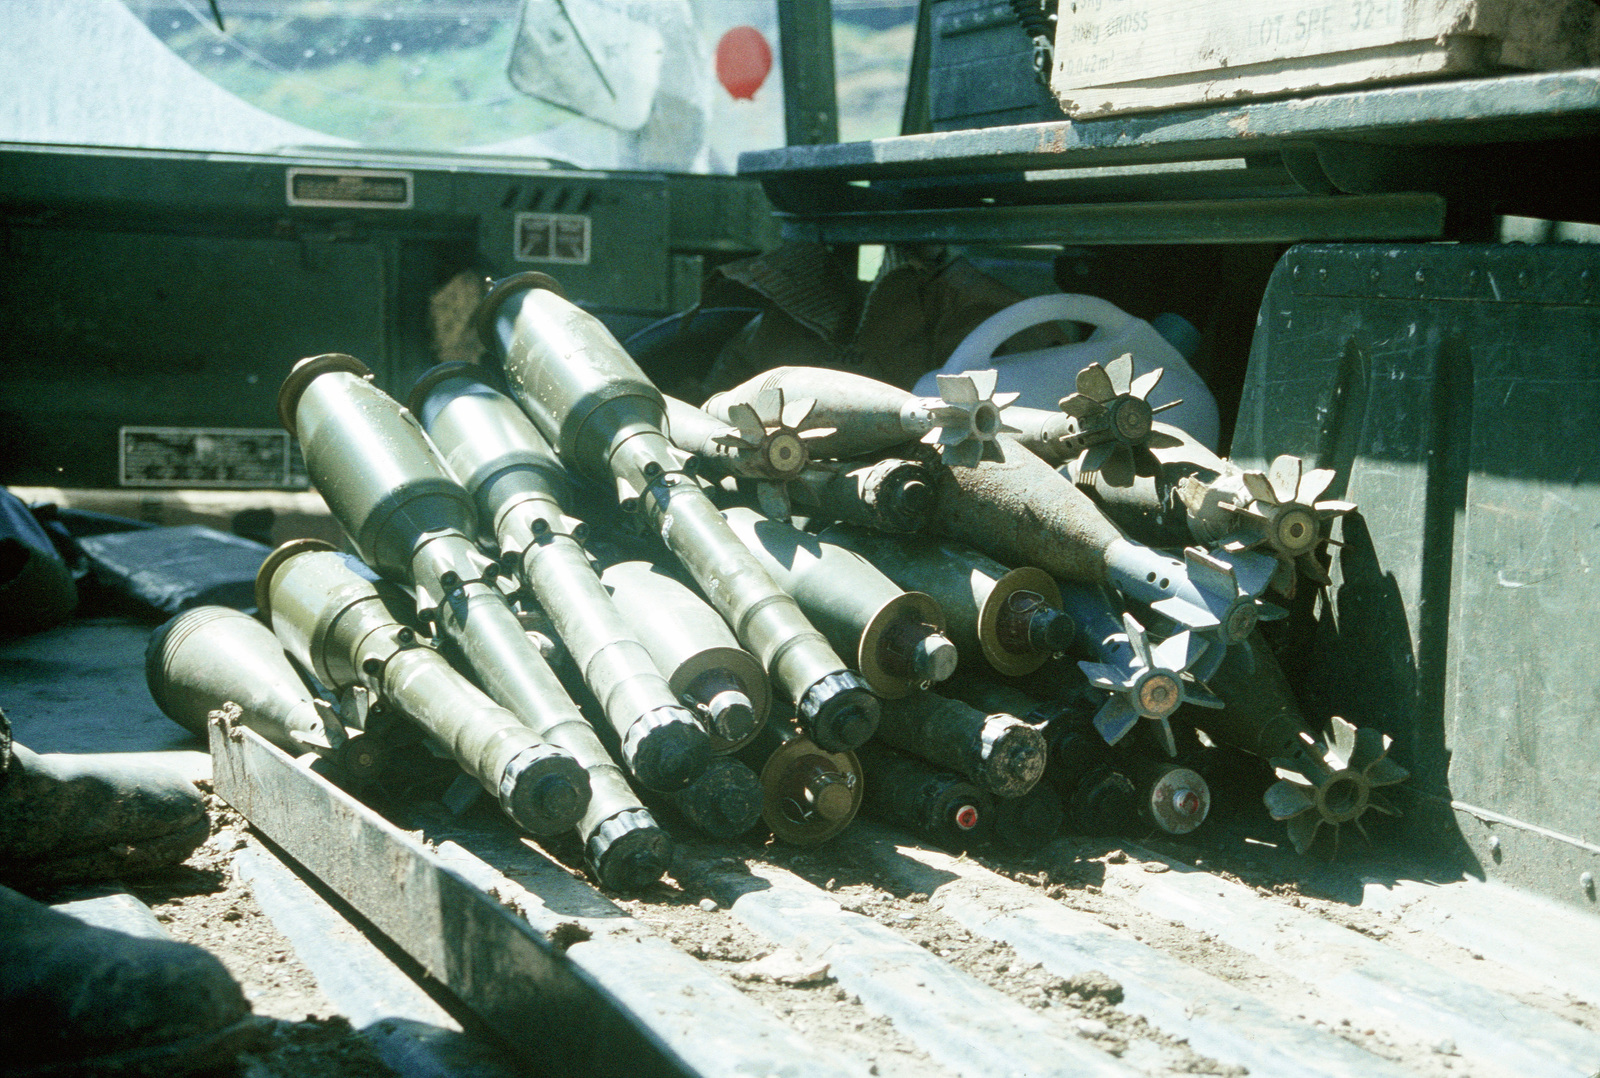 Rocket-propelled grenades and mortar rounds sit in the back